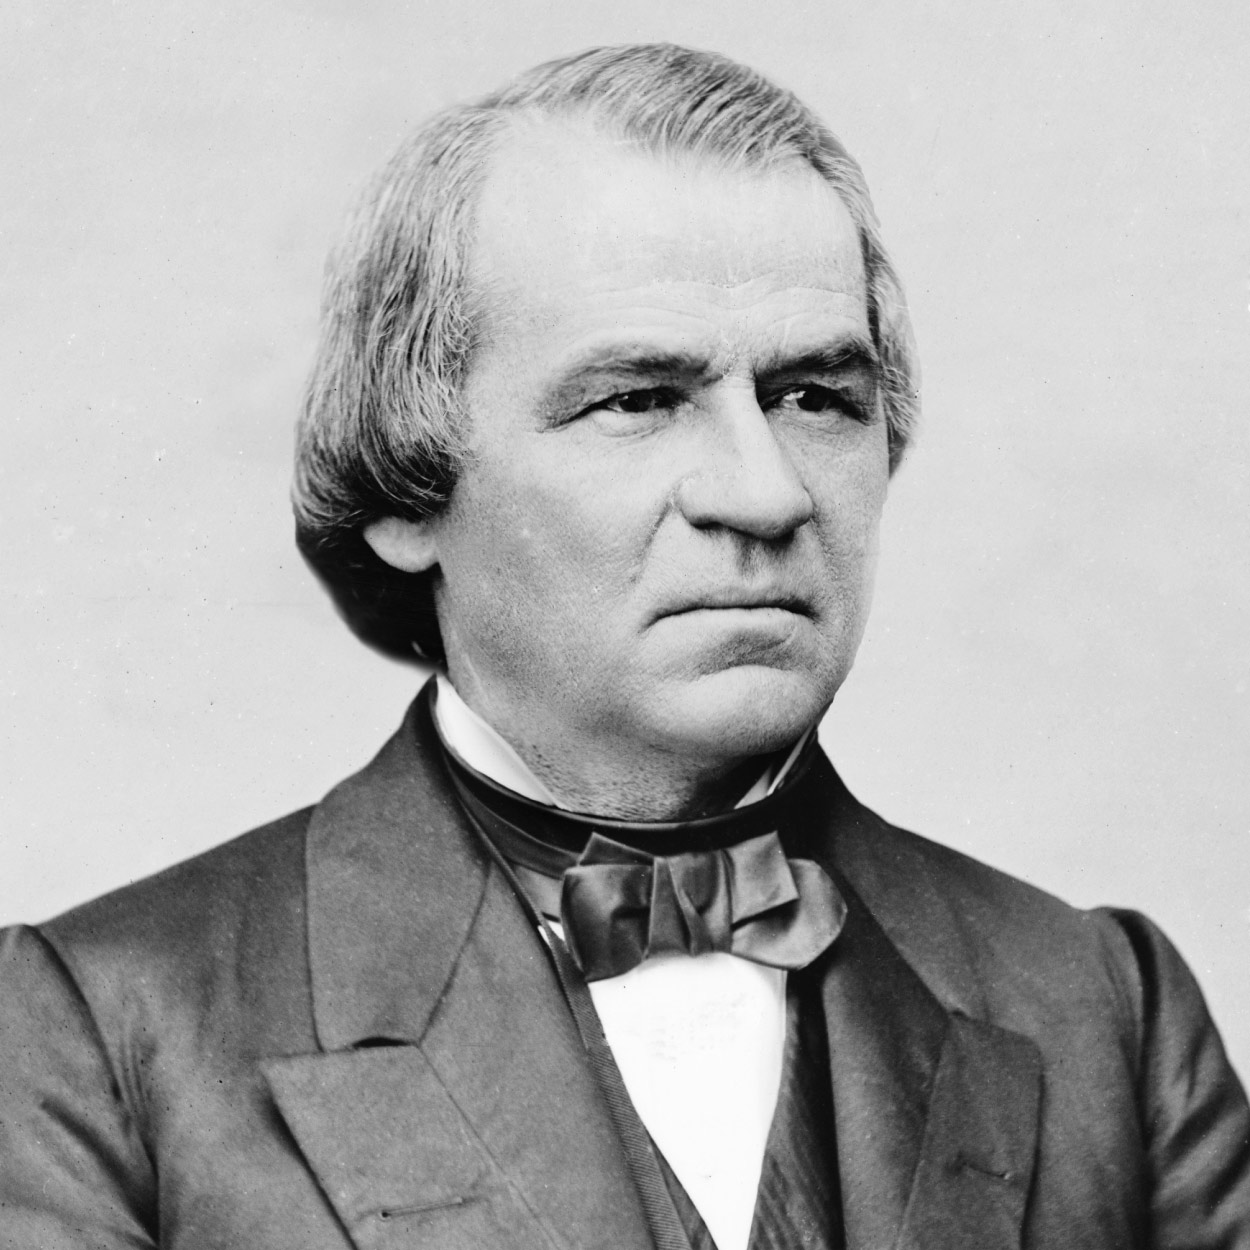 Portrait of Andrew Johnson, the 17th President of the United States